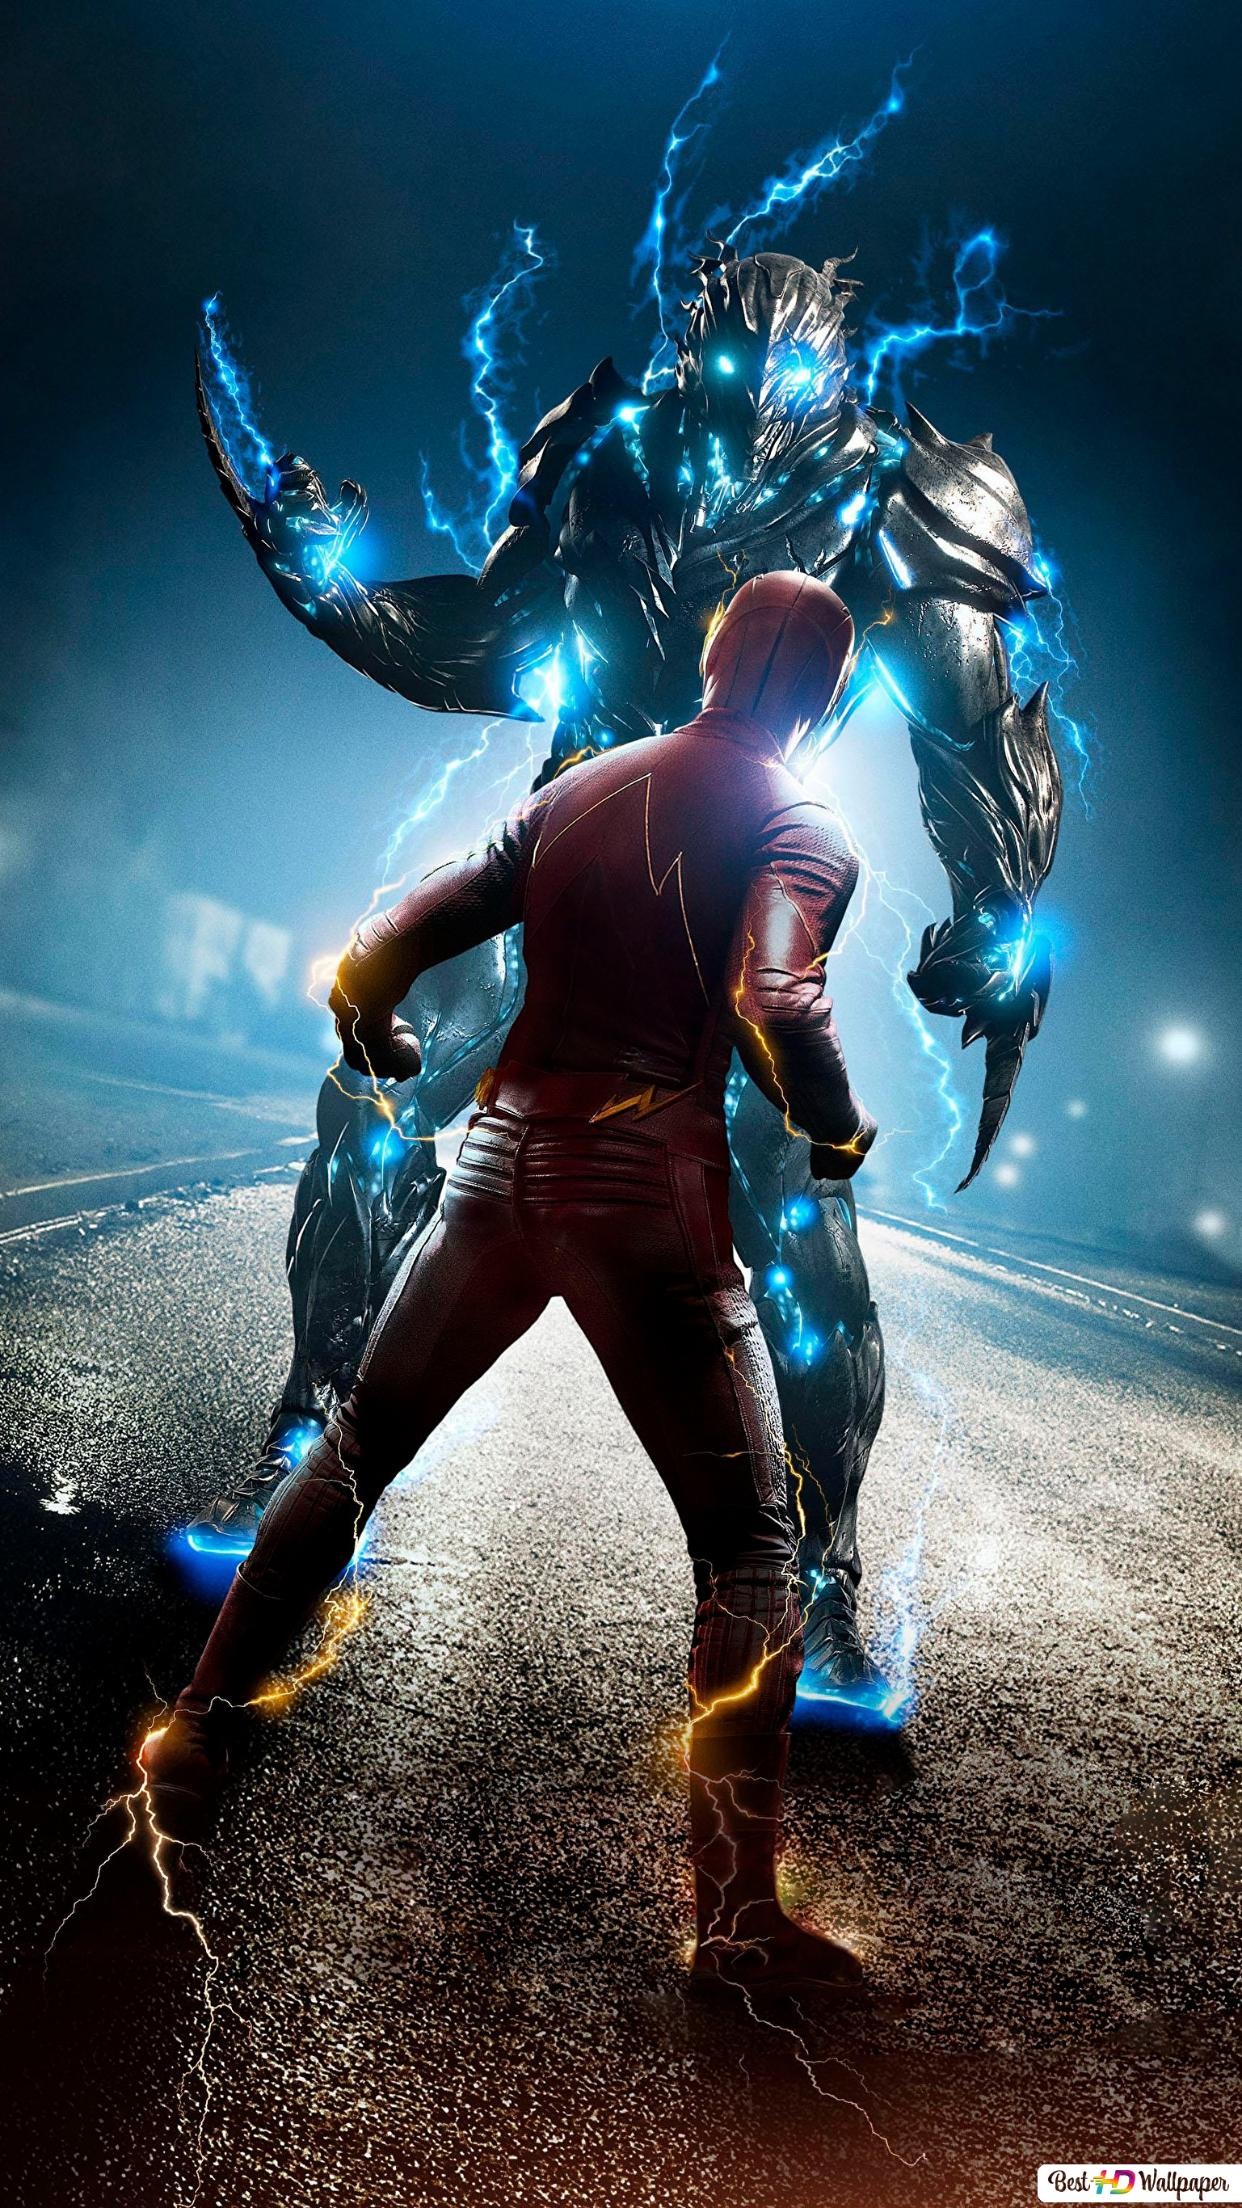 The Flash Series Fighting With Lightning Demon Hd